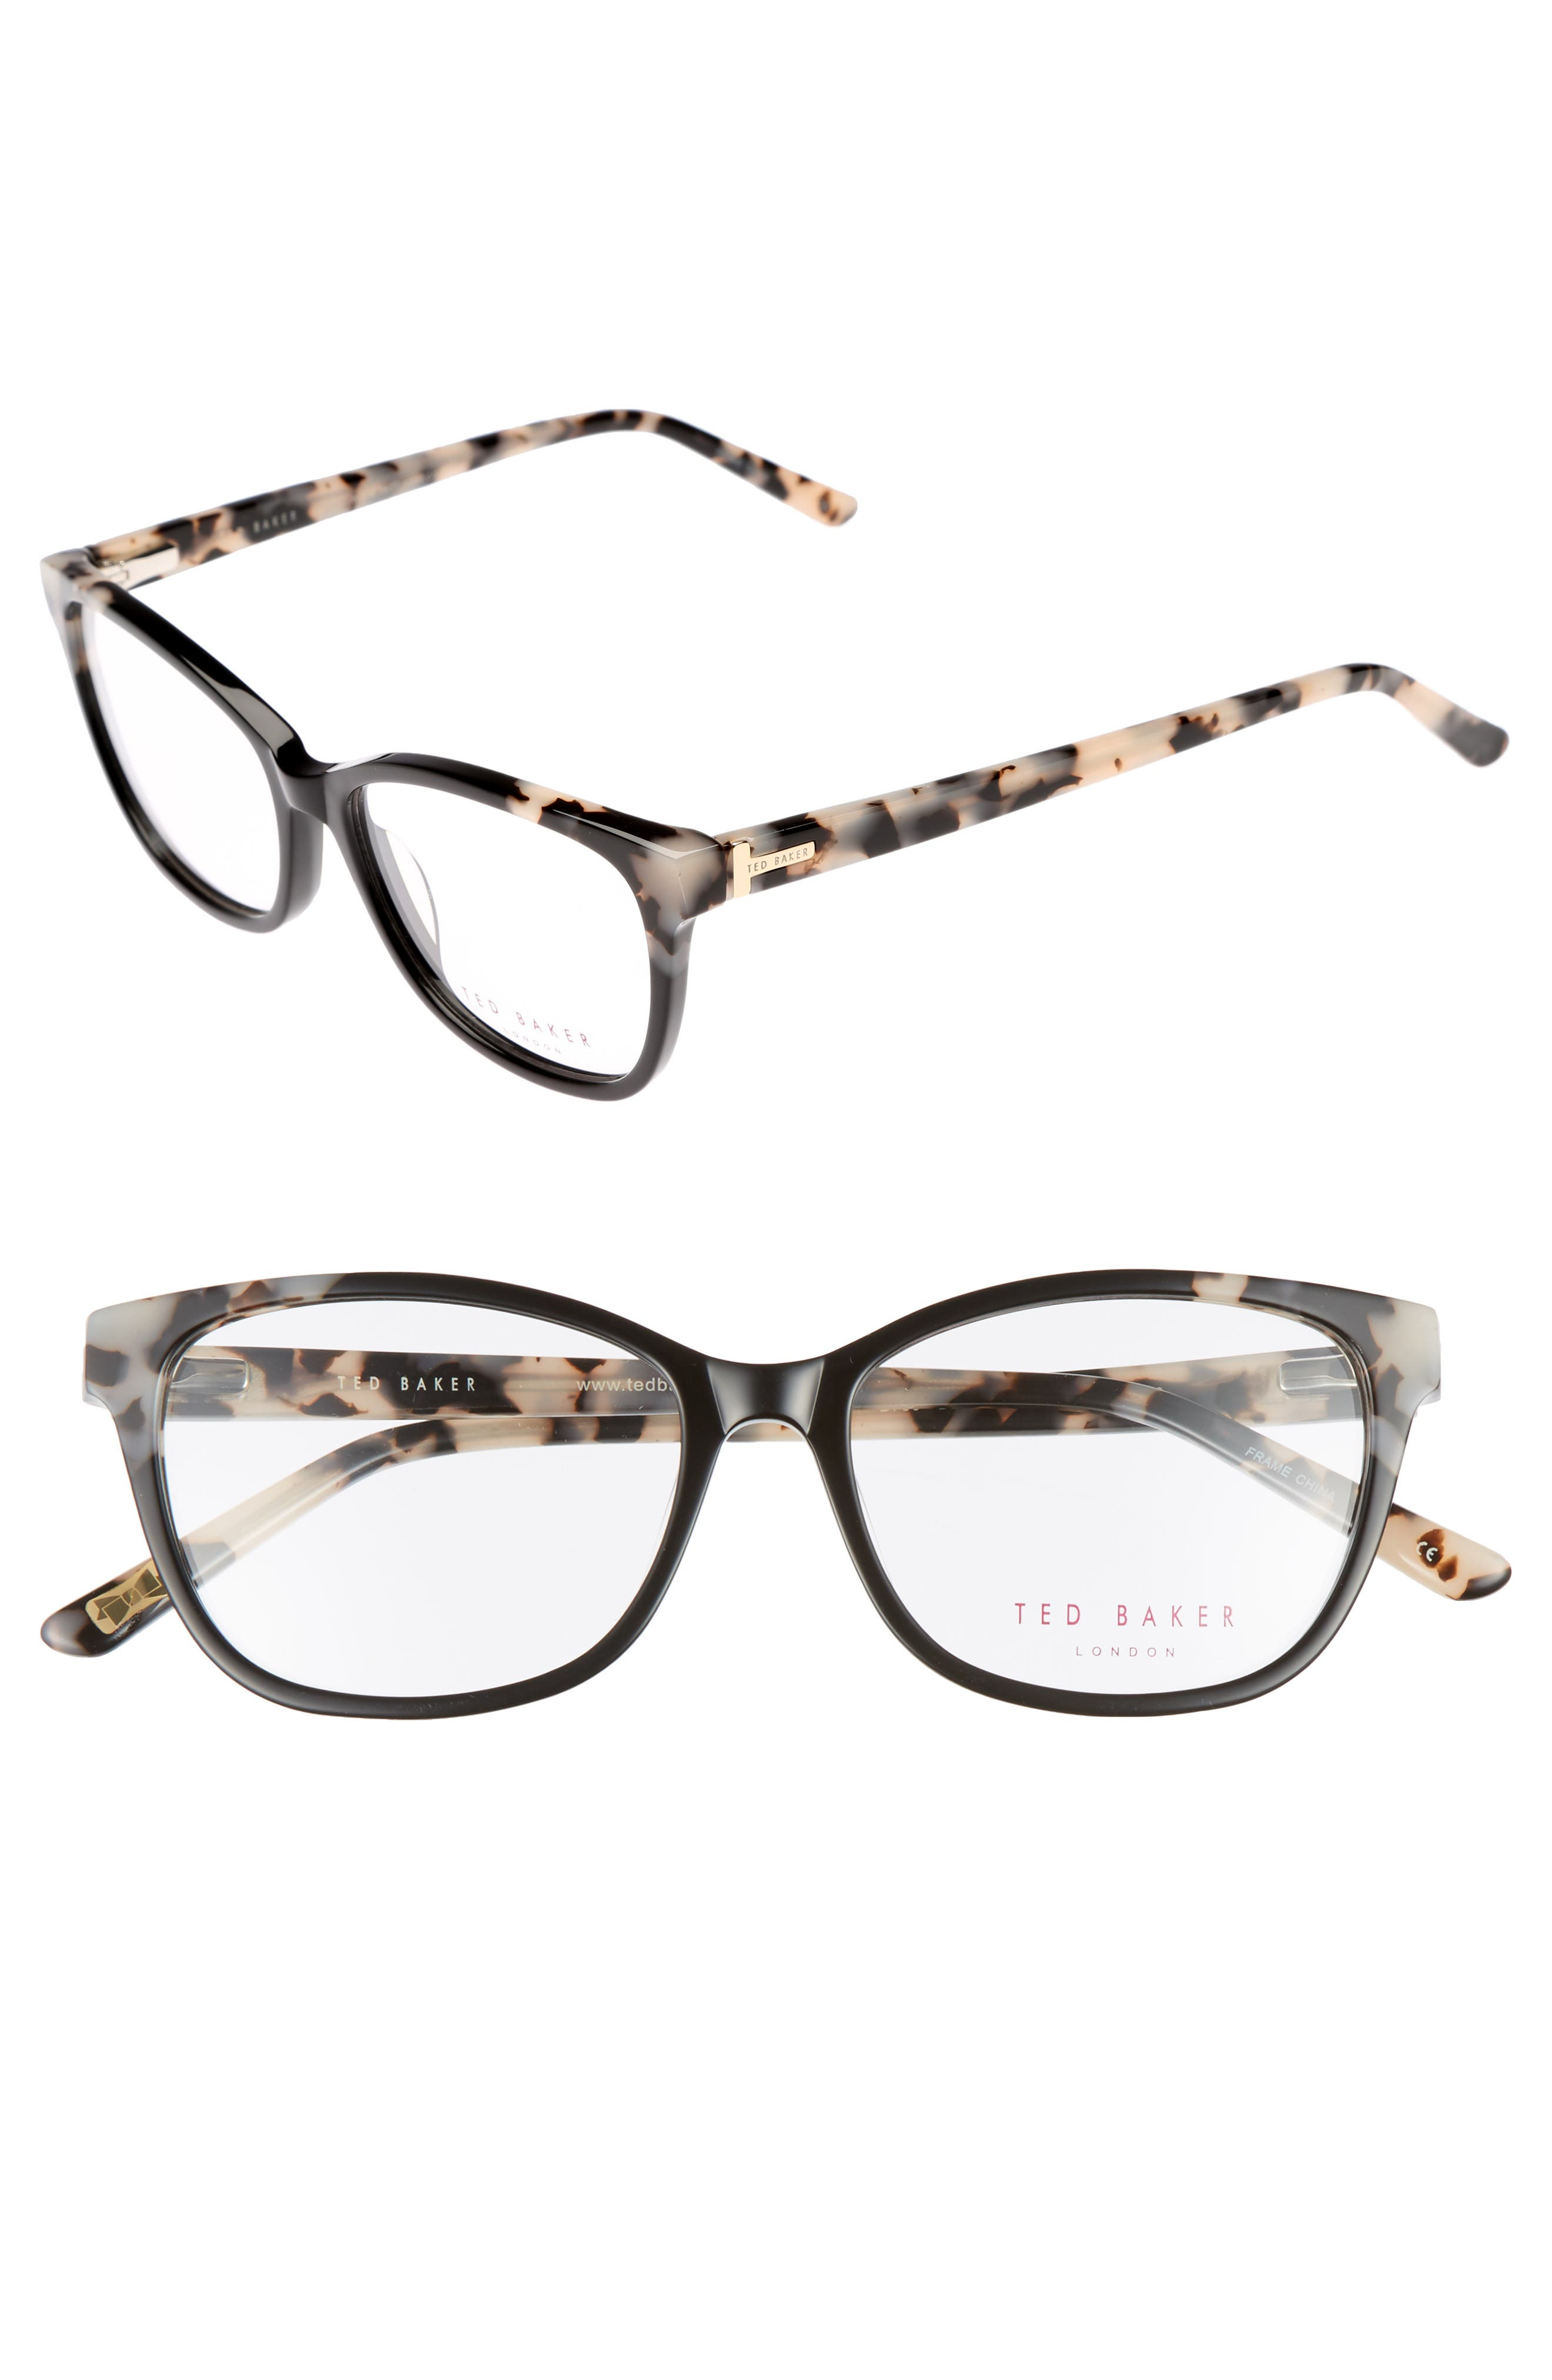 52mm Square Optical Glasses,                         Main,                         color,